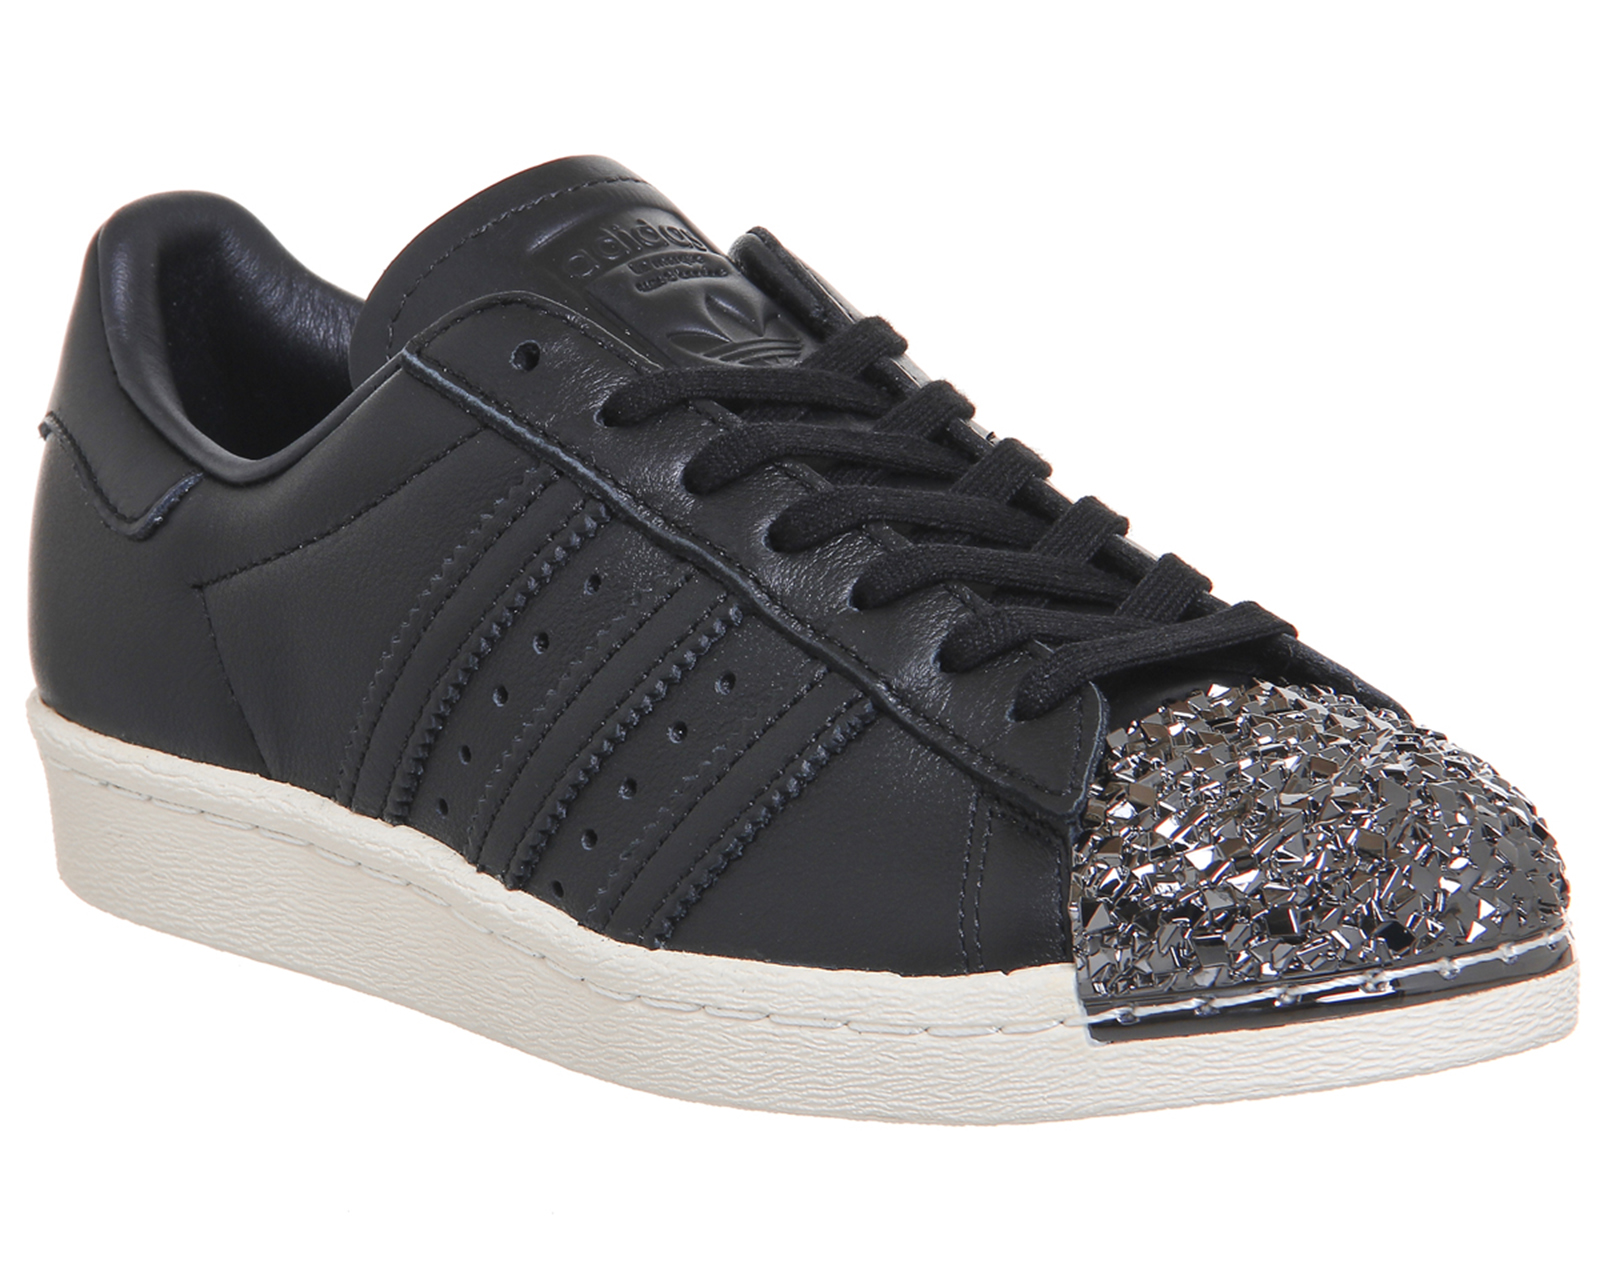 adidas superstar metal toe türkiye